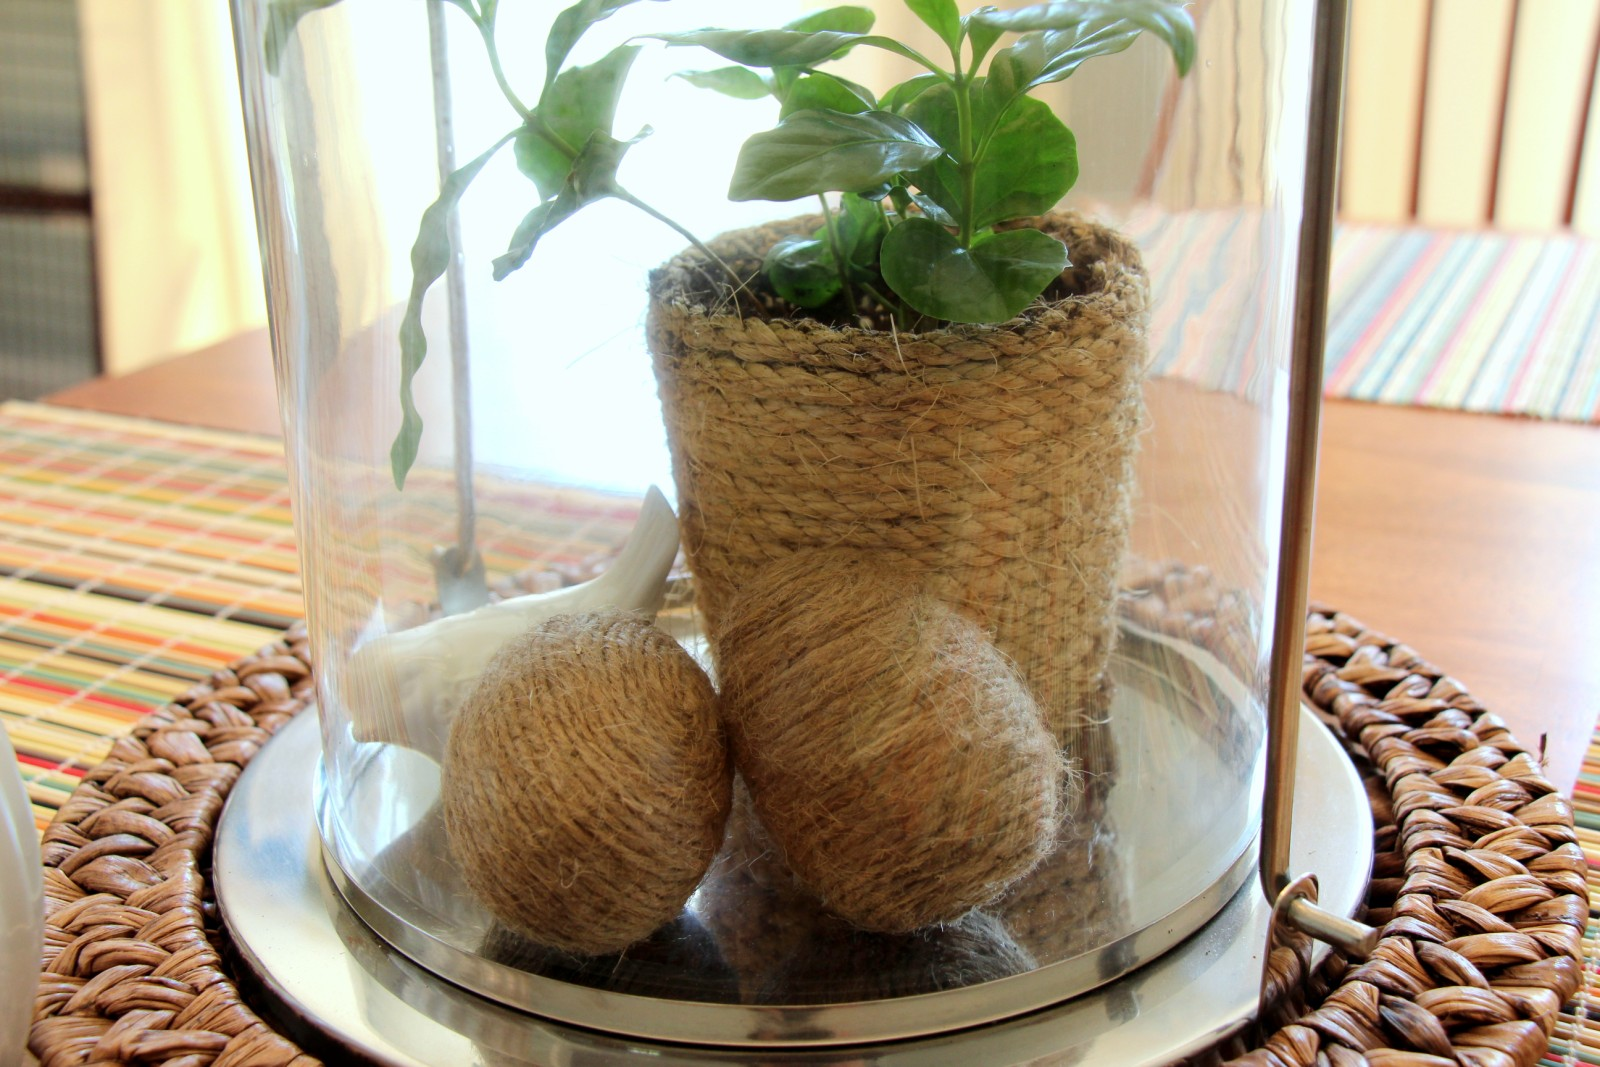 Decorating With Natural Elements heart maine home: spring decor with natural elements and textures